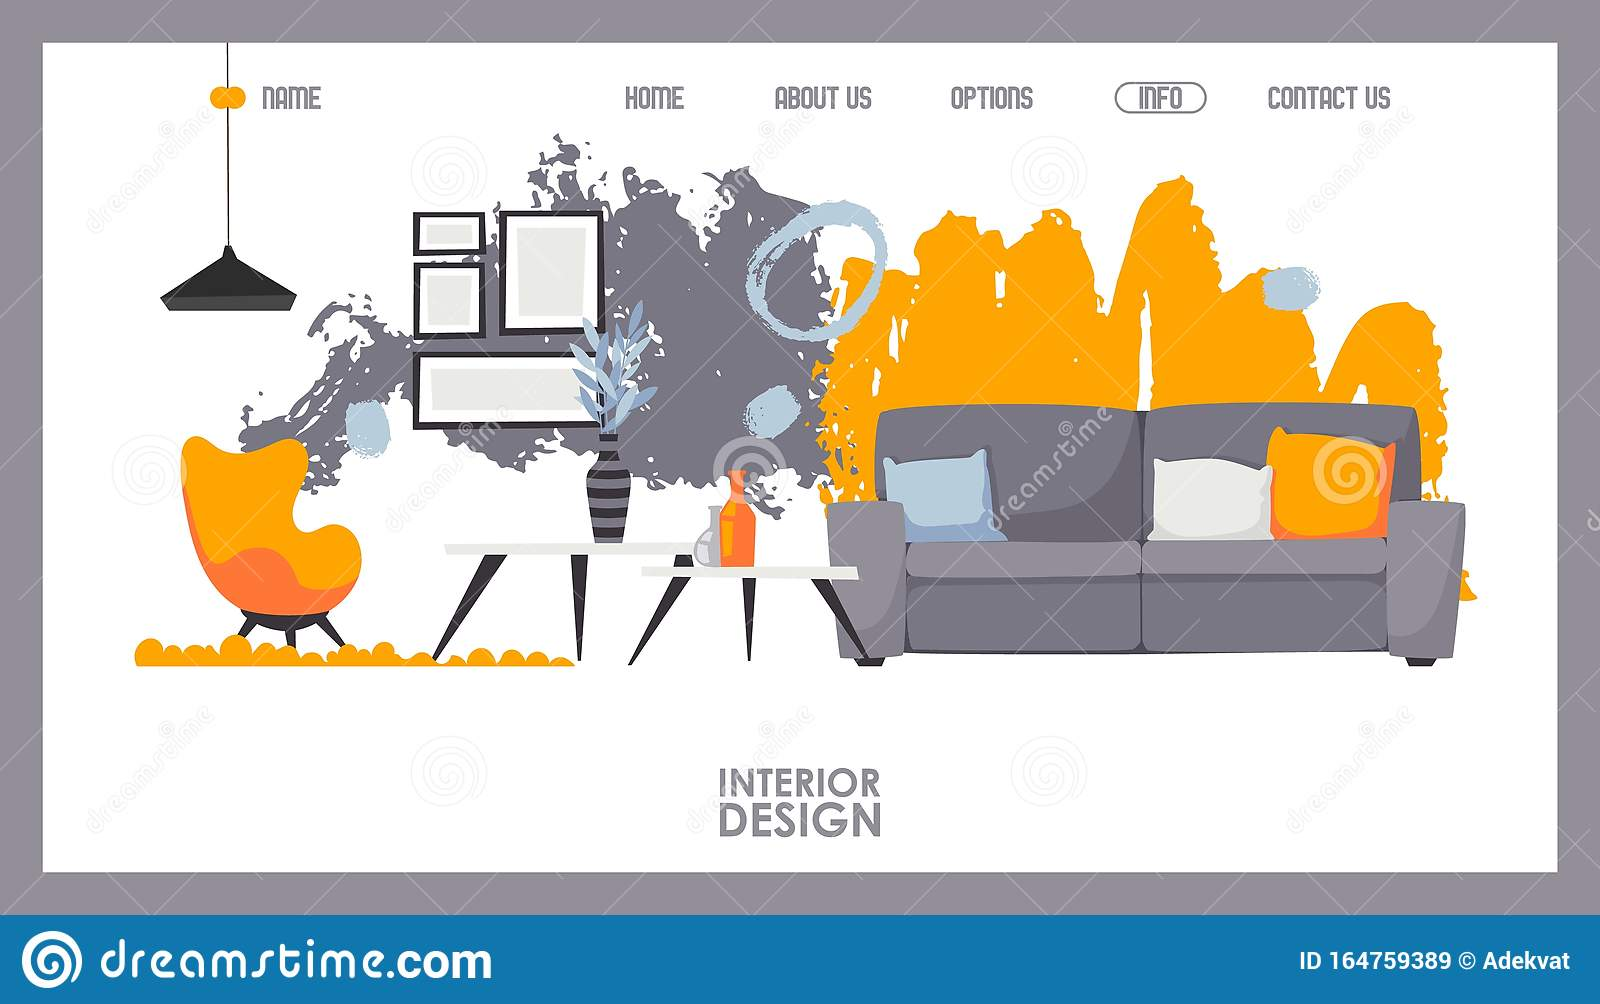 Interior Design Website Vector Illustration Landing Page Template Of Furniture Store Online Shopping For Home Stock Vector Illustration Of Brush Creative 164759389